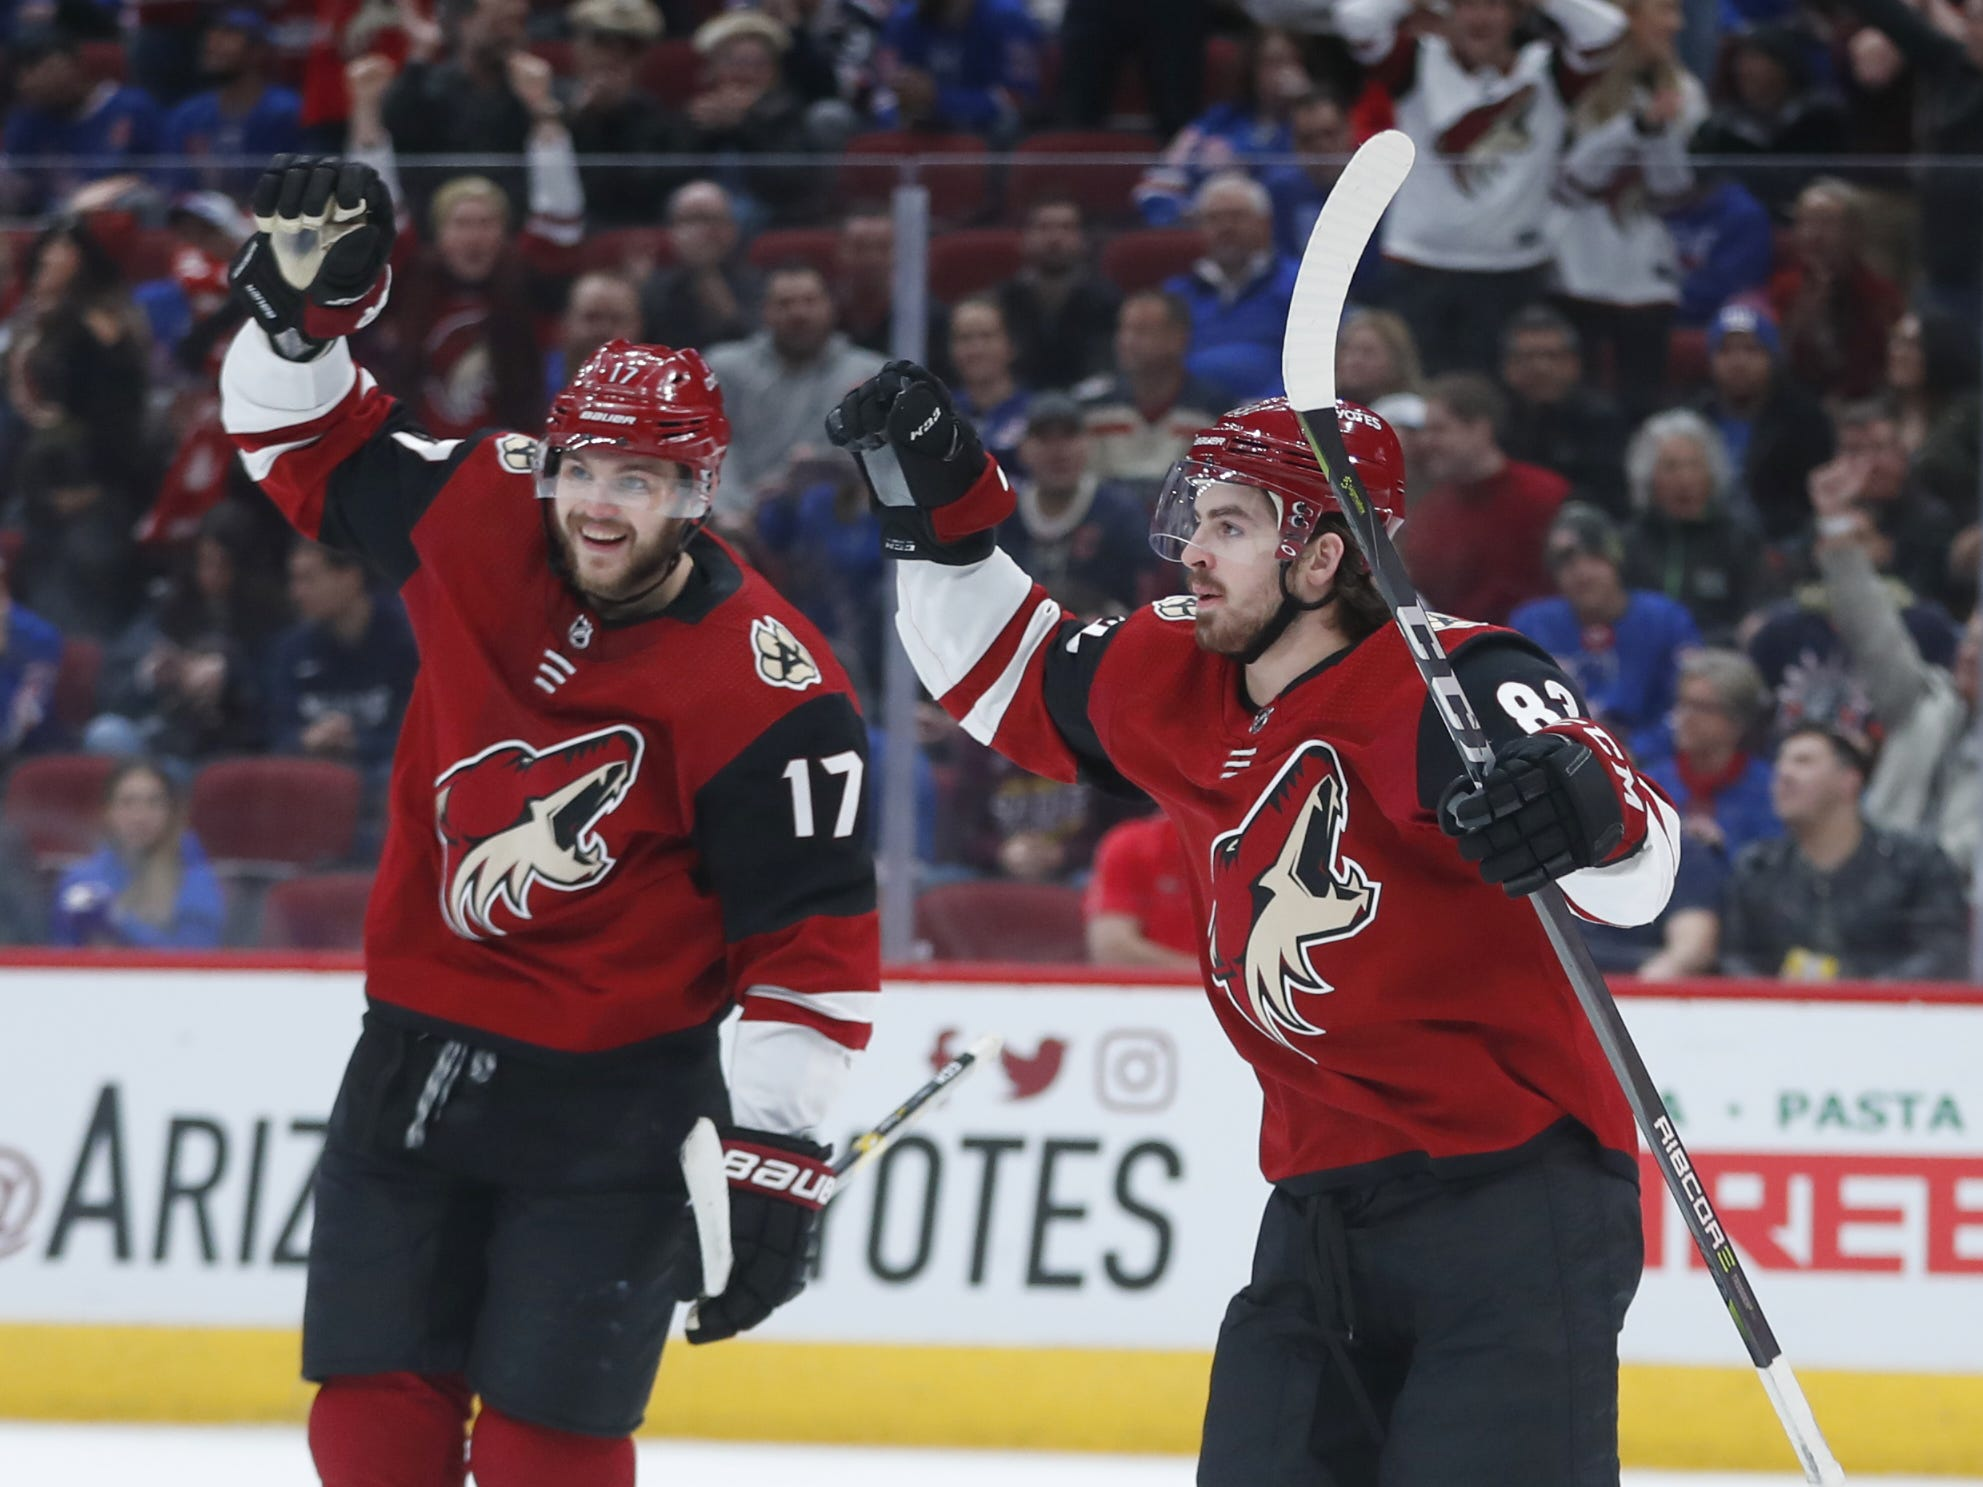 Coyotes' Alex Galchenyuk (17) and Conor Garland (83) celebrate a goal from Nick Cousins against the Rangers during the second period at Gila River Arena in Glendale, Ariz. on January 6, 2019.